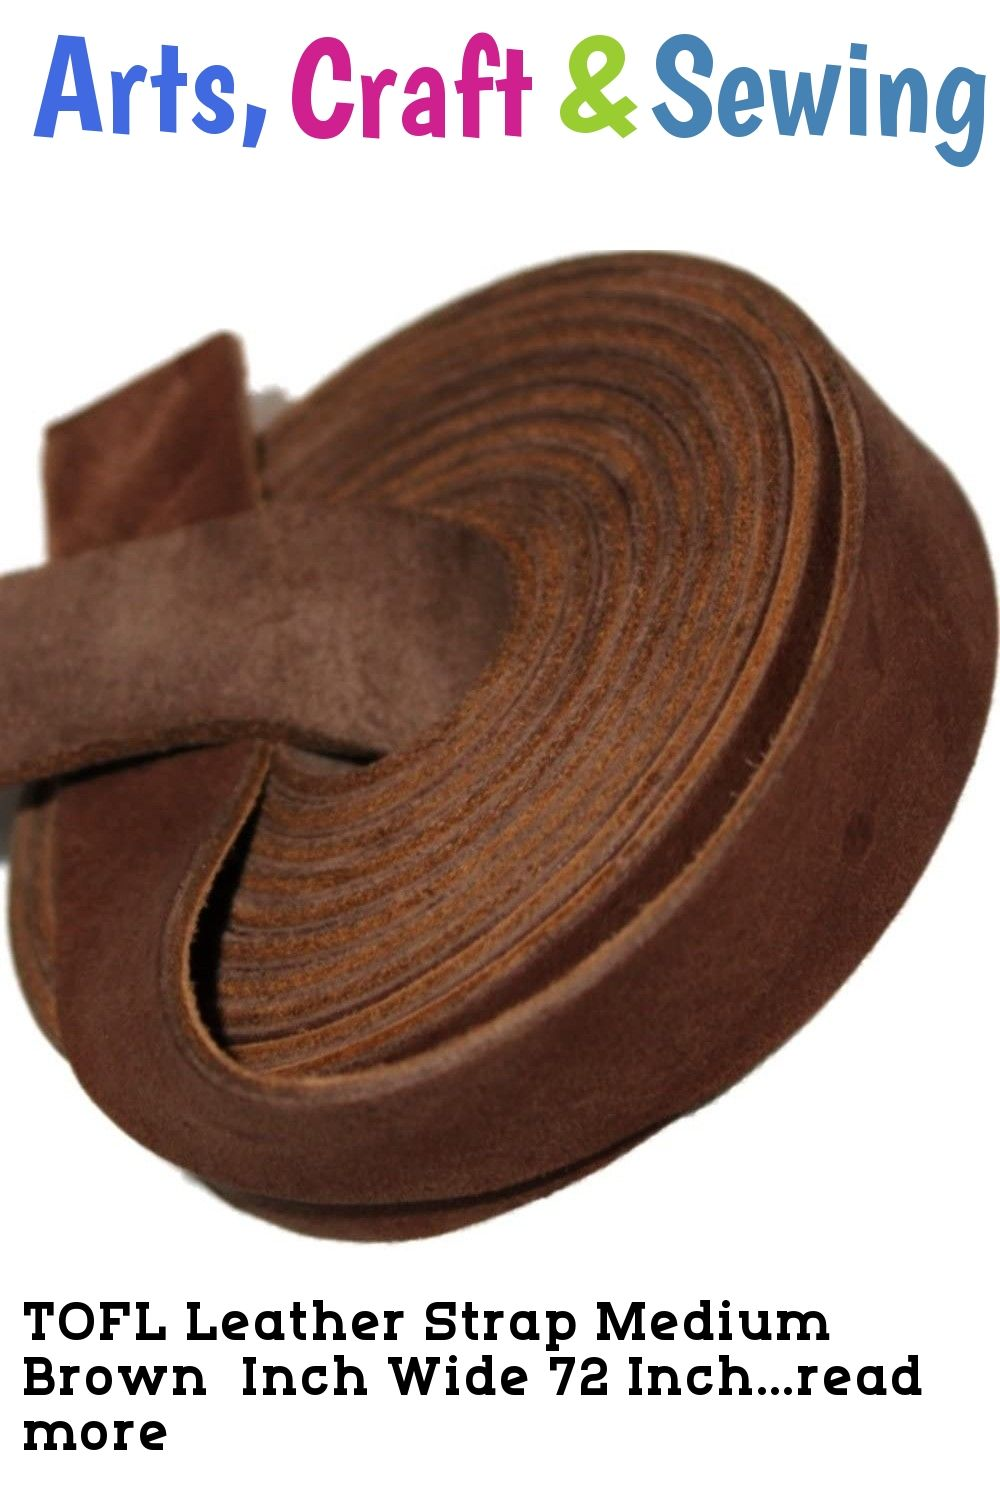 Tofl Leather Strap Medium Brown Inch Wide 72 Inches Long This Is An Affiliate Link